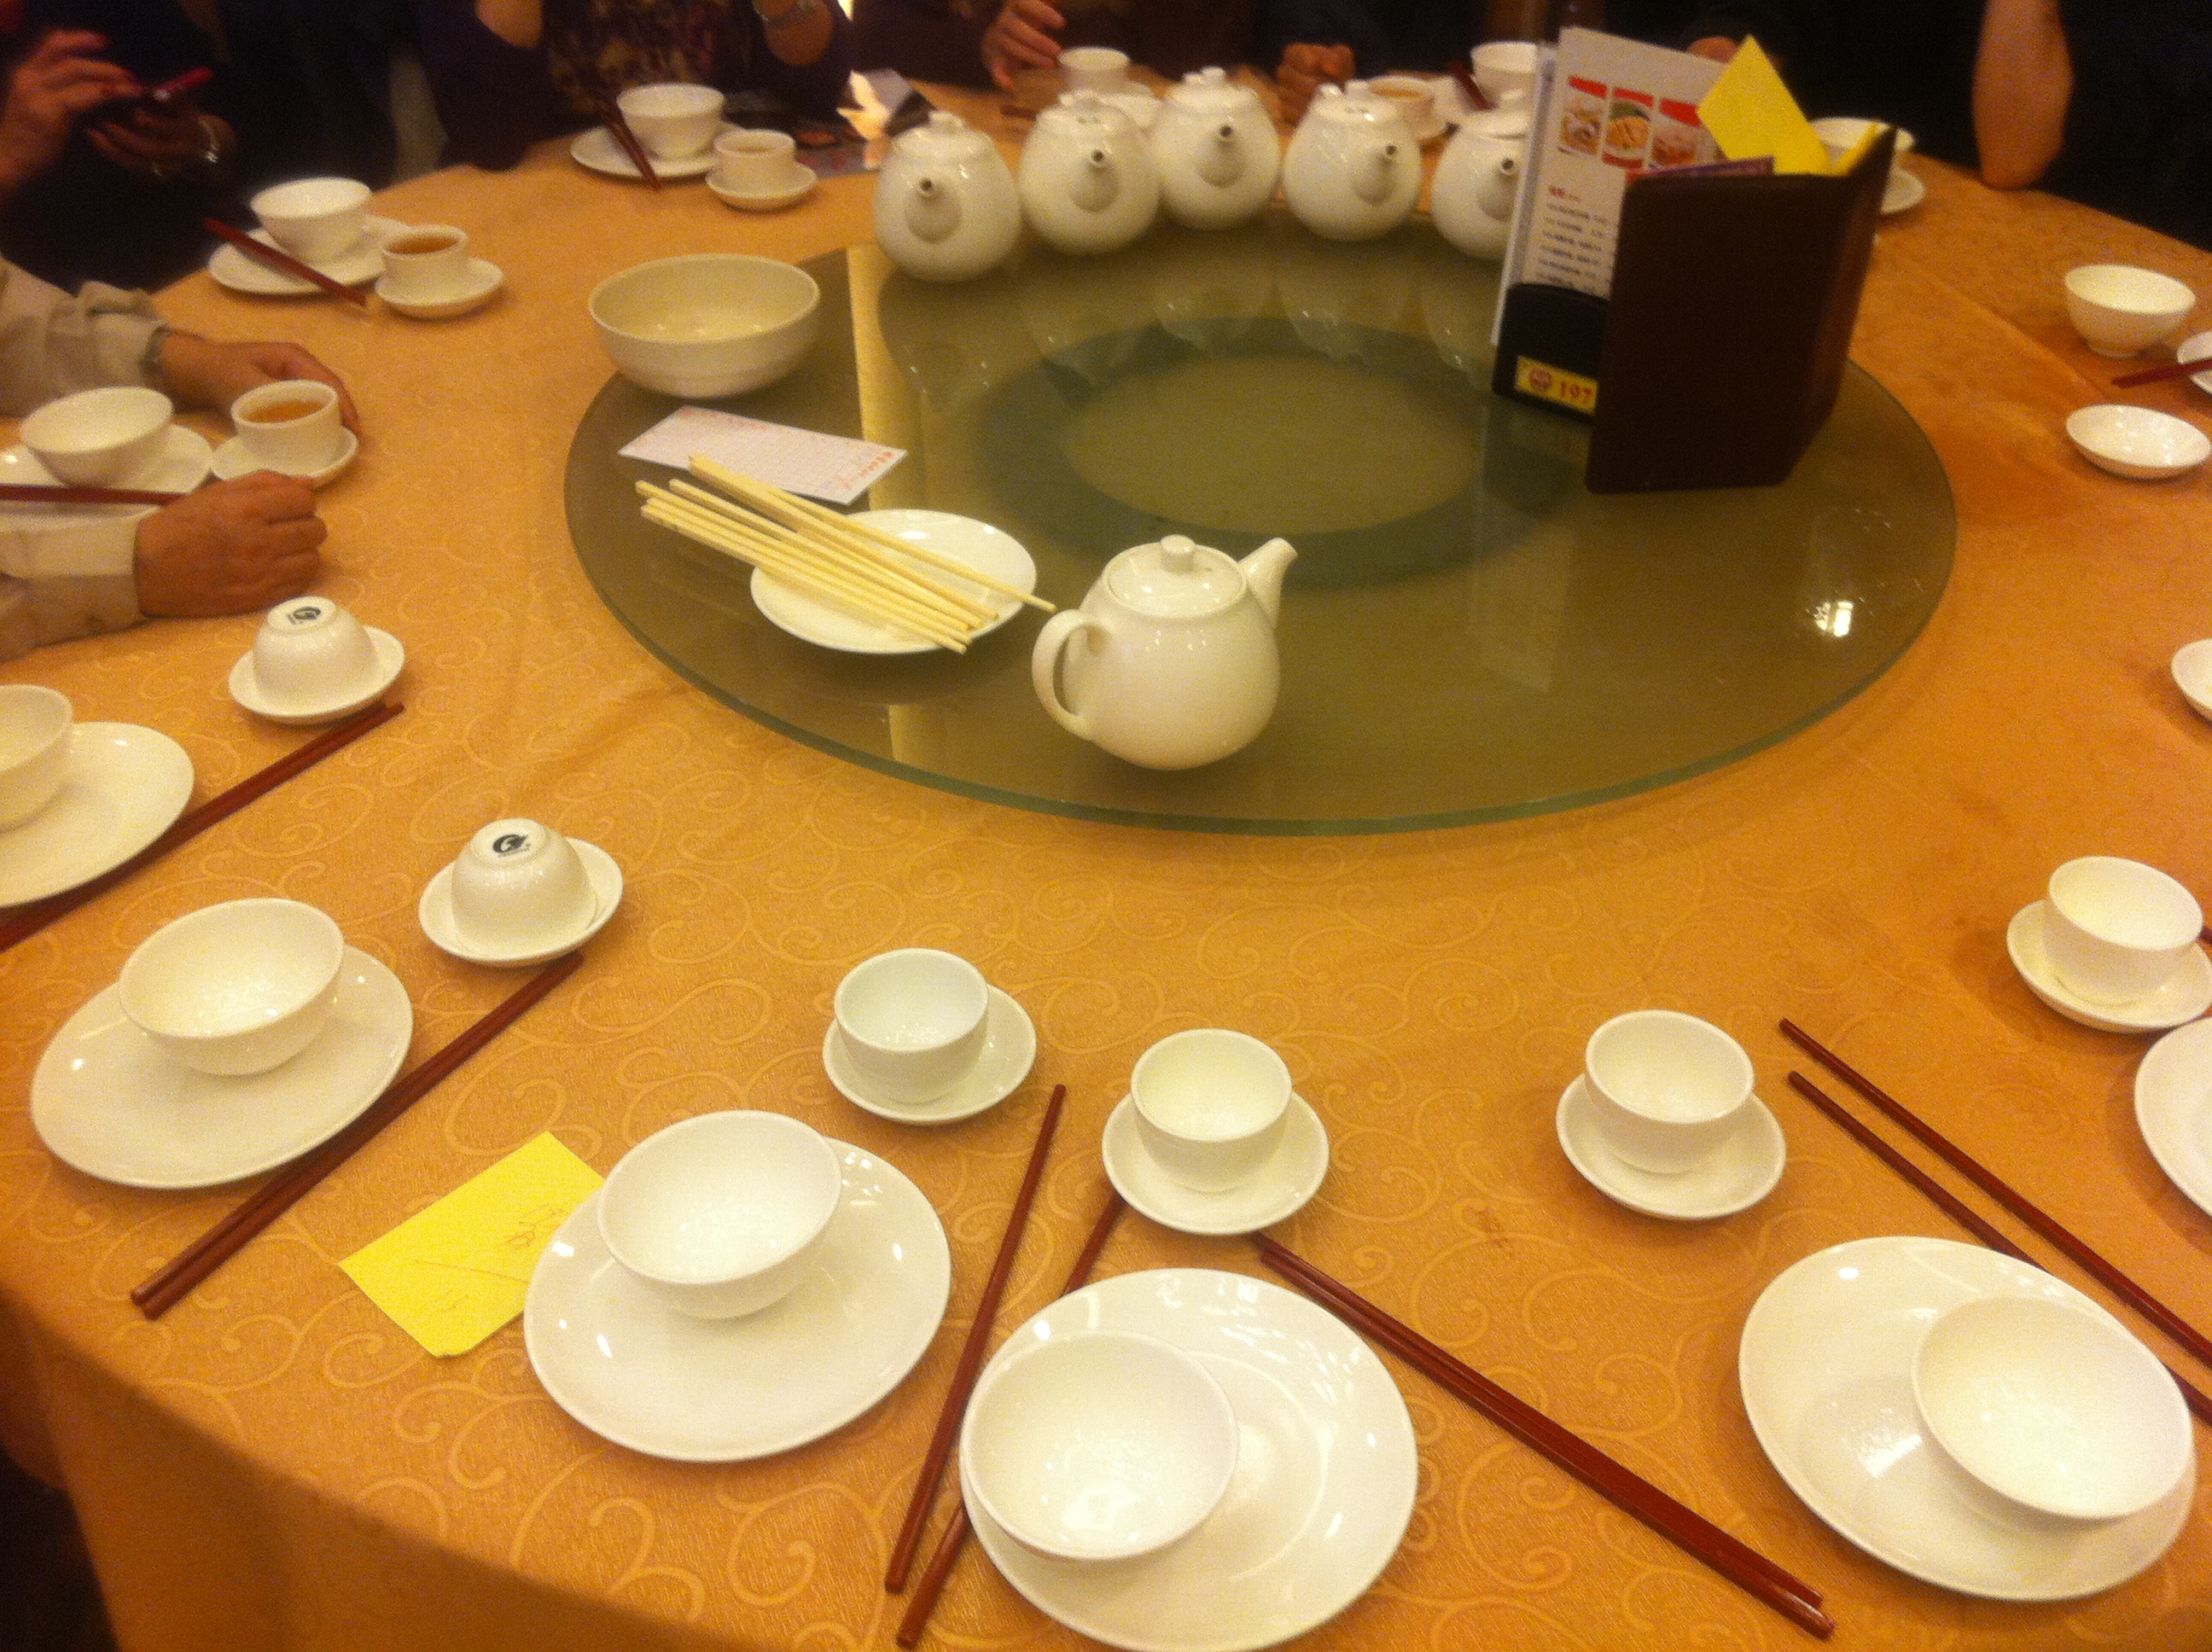 Chinese Etiquette And Rules Of Behavior At The Table New